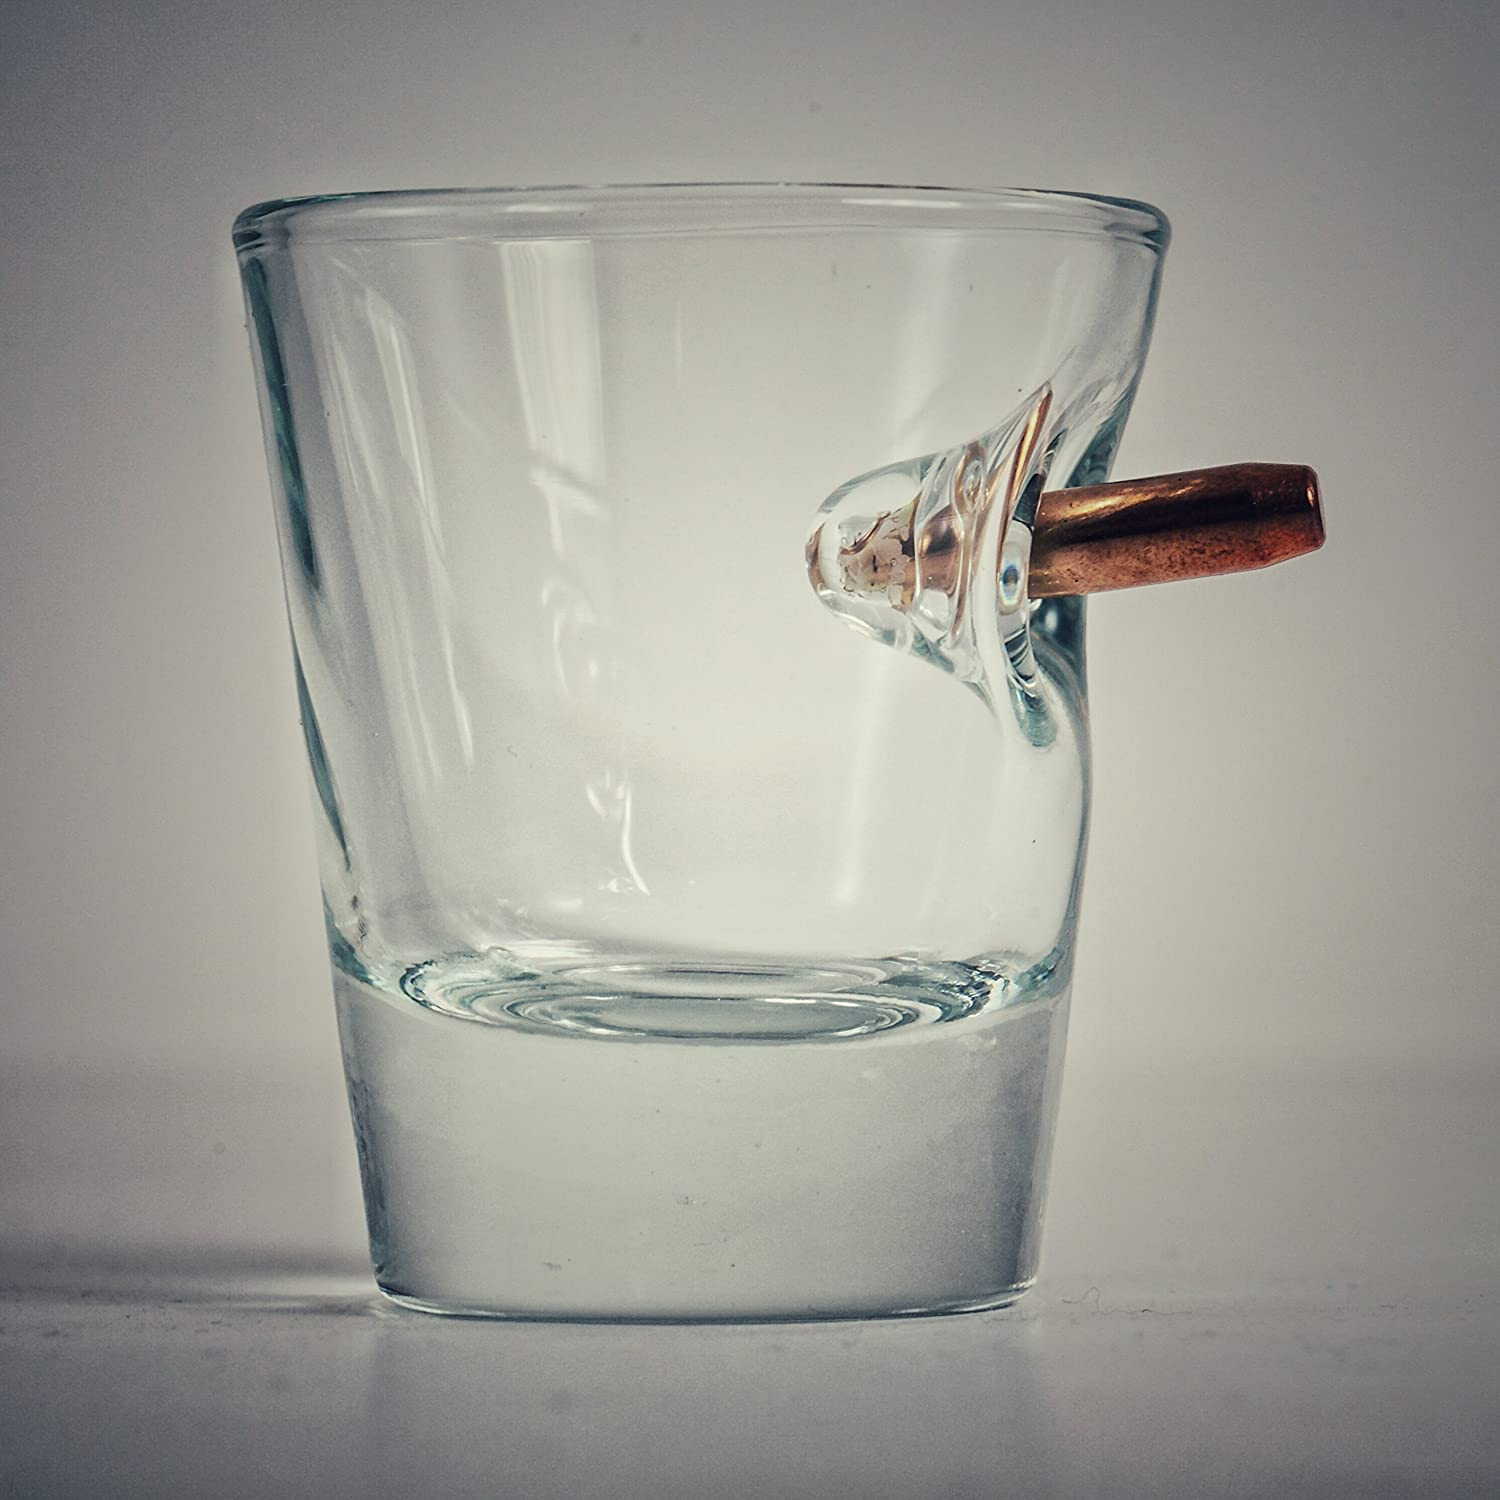 Lovely Amazon.com: The Original BenShot Shot Glass With Real 0.308 Bullet  #Bulletproof MADE In The USA: Handmade